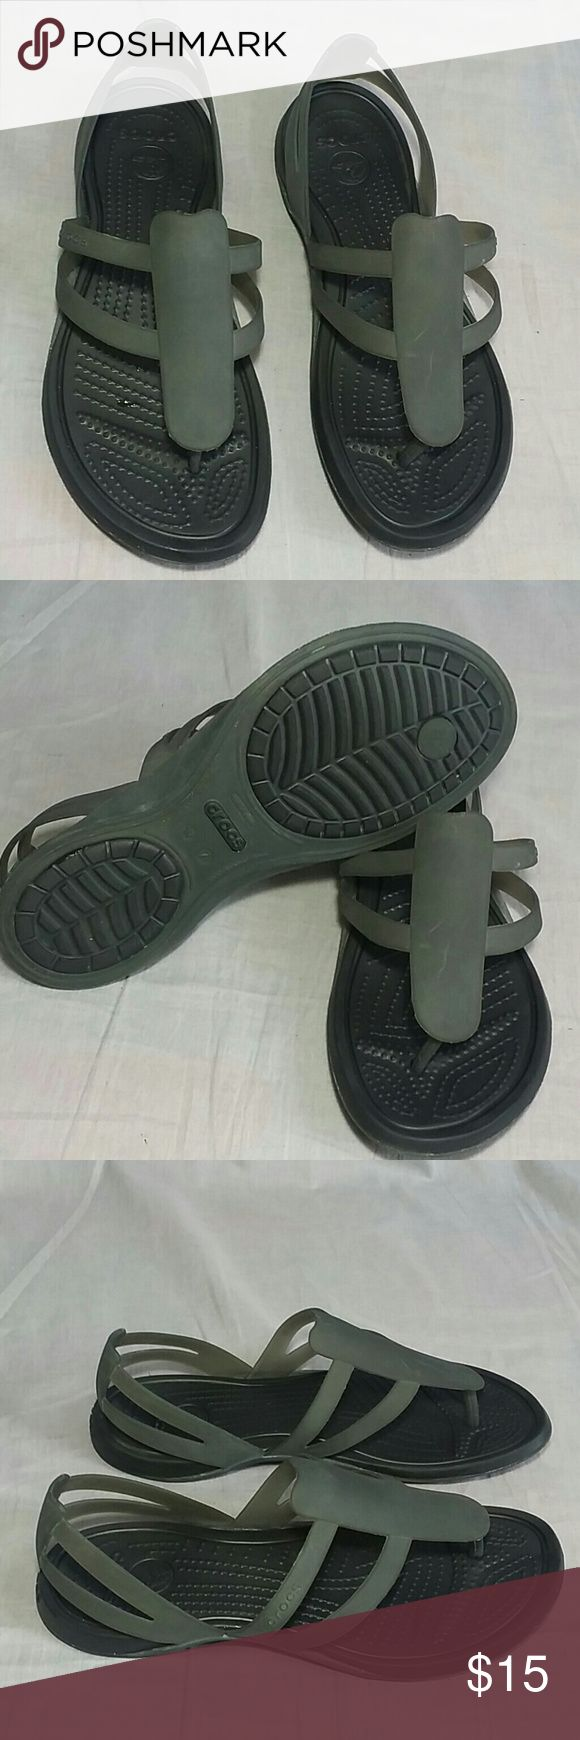 Women's Crocs Sandals Gray/Black 7 M Rubber Item is in a good condition, NO PETS AND SMOKE FREE HOME. CROCS Shoes Sandals